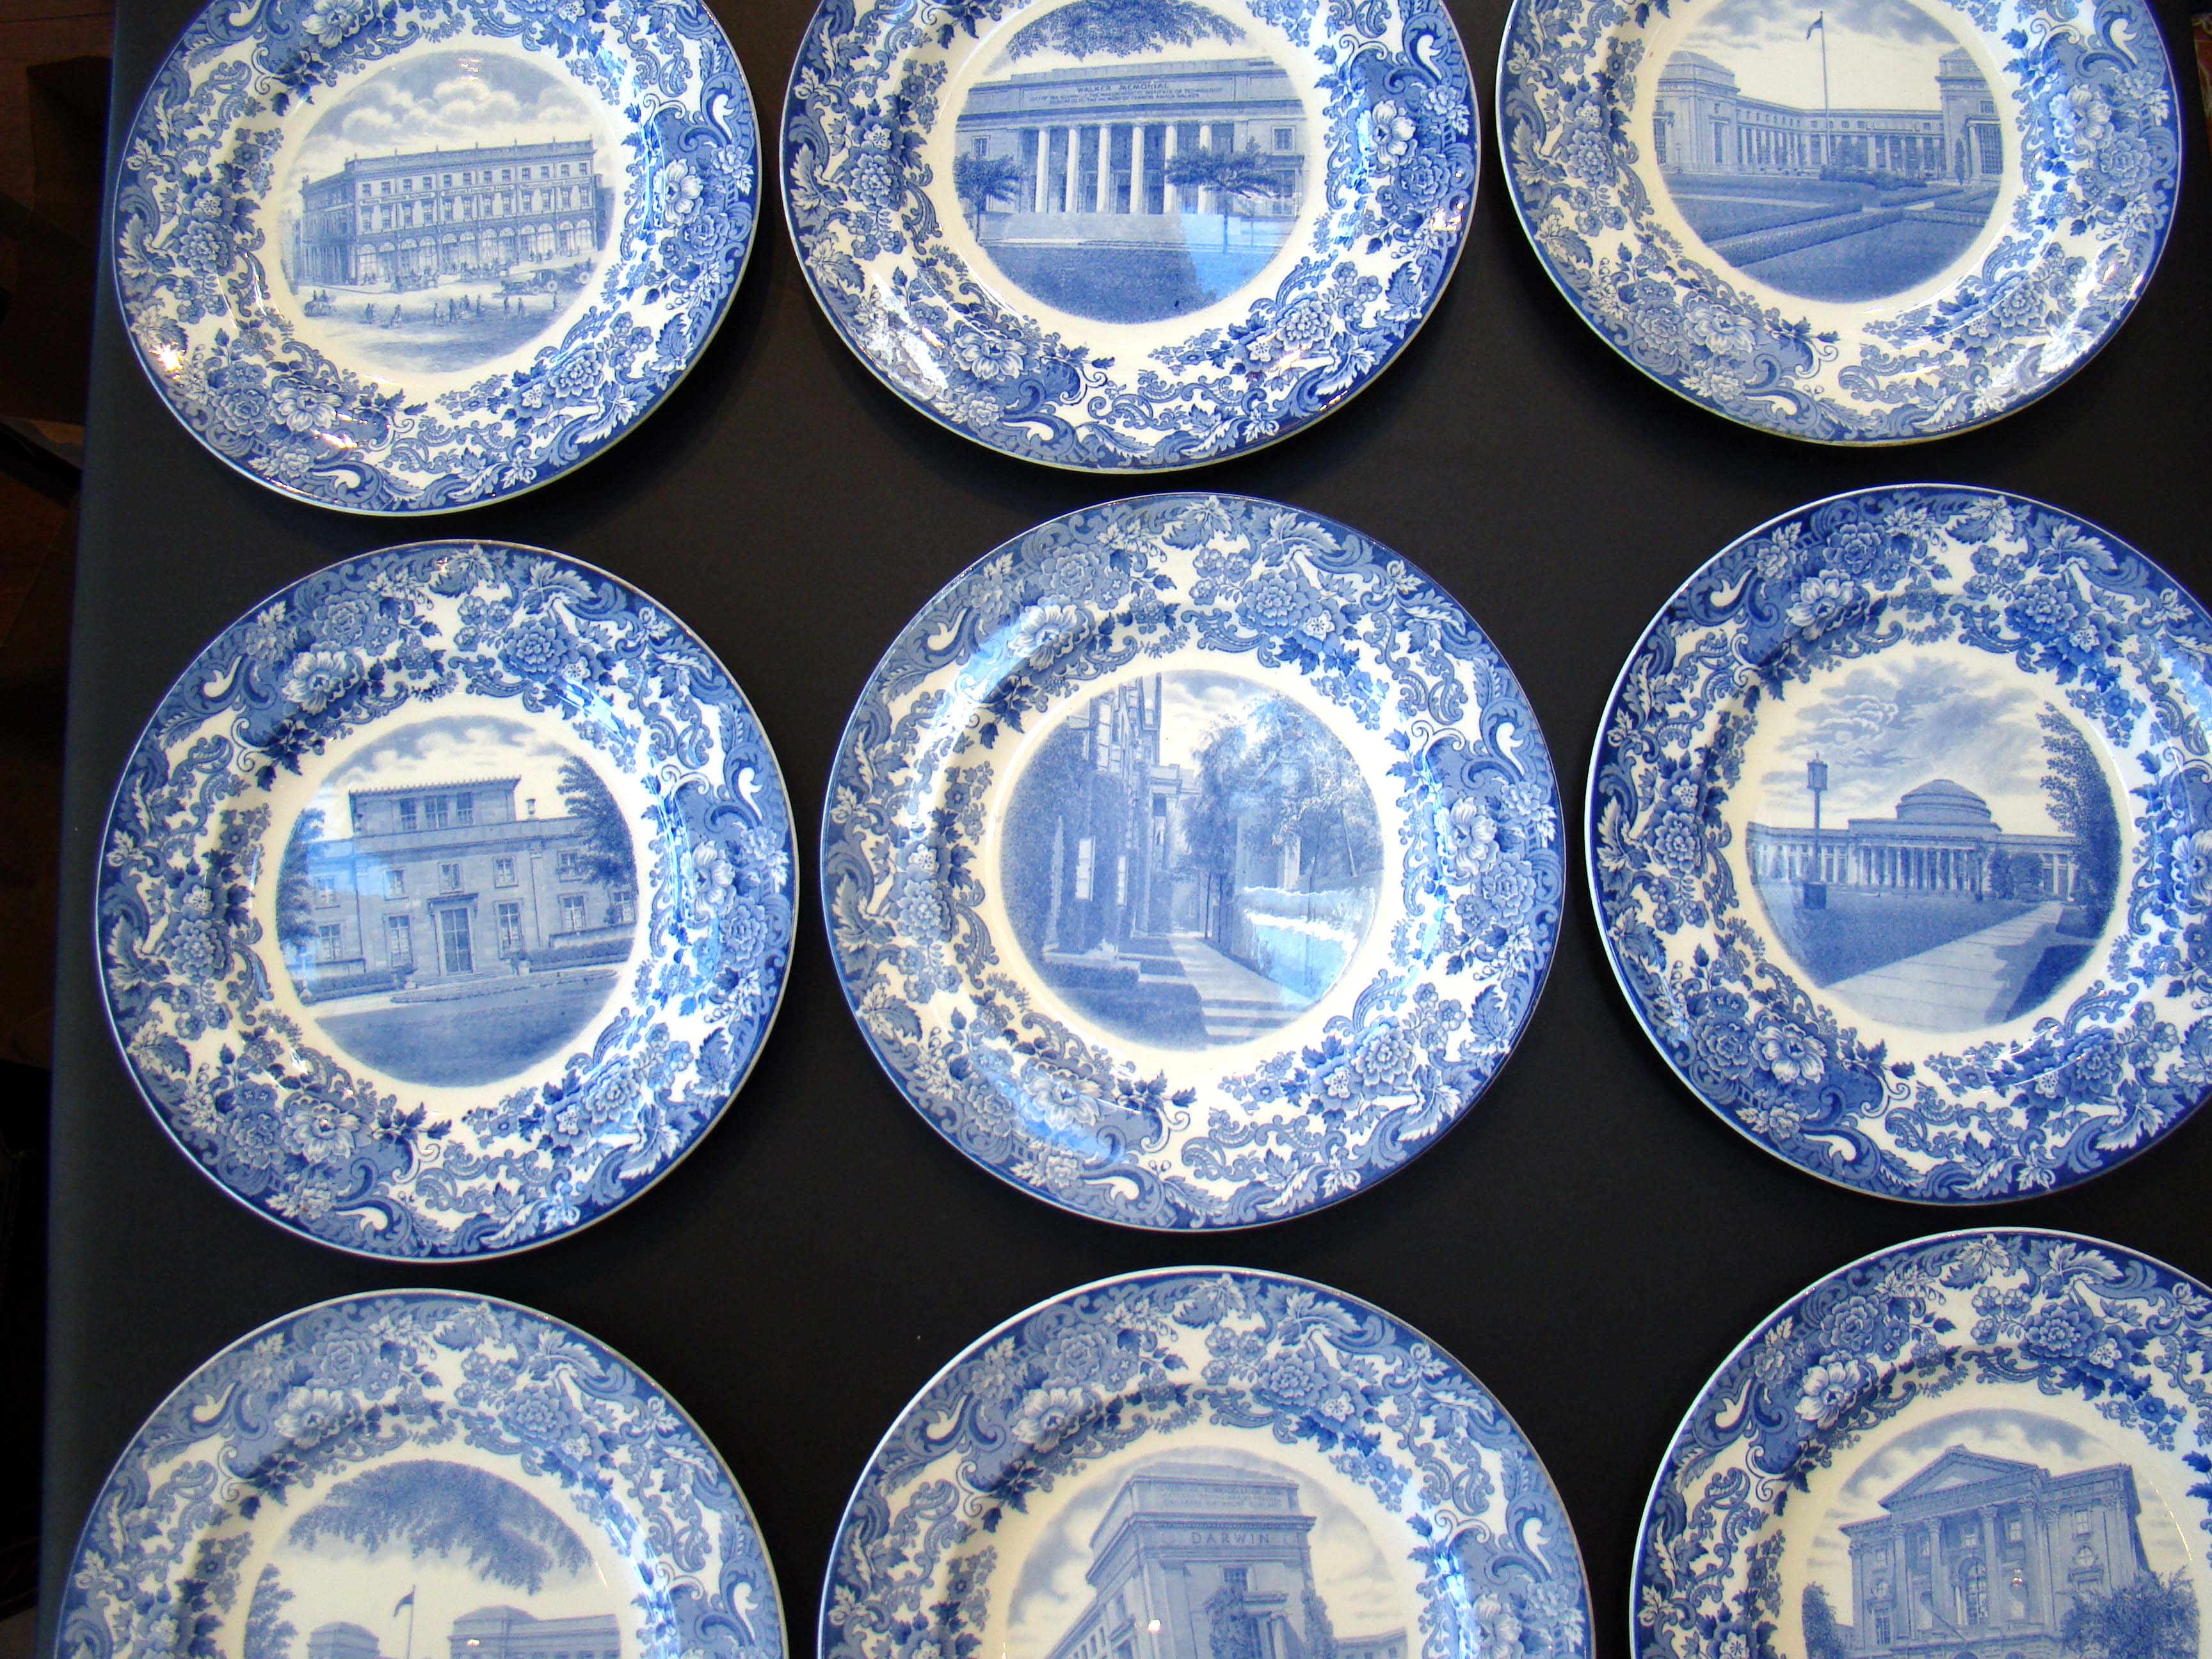 click to view larger image of A rare set of nine M I T commemorative plates made by Wedgwood in 1930